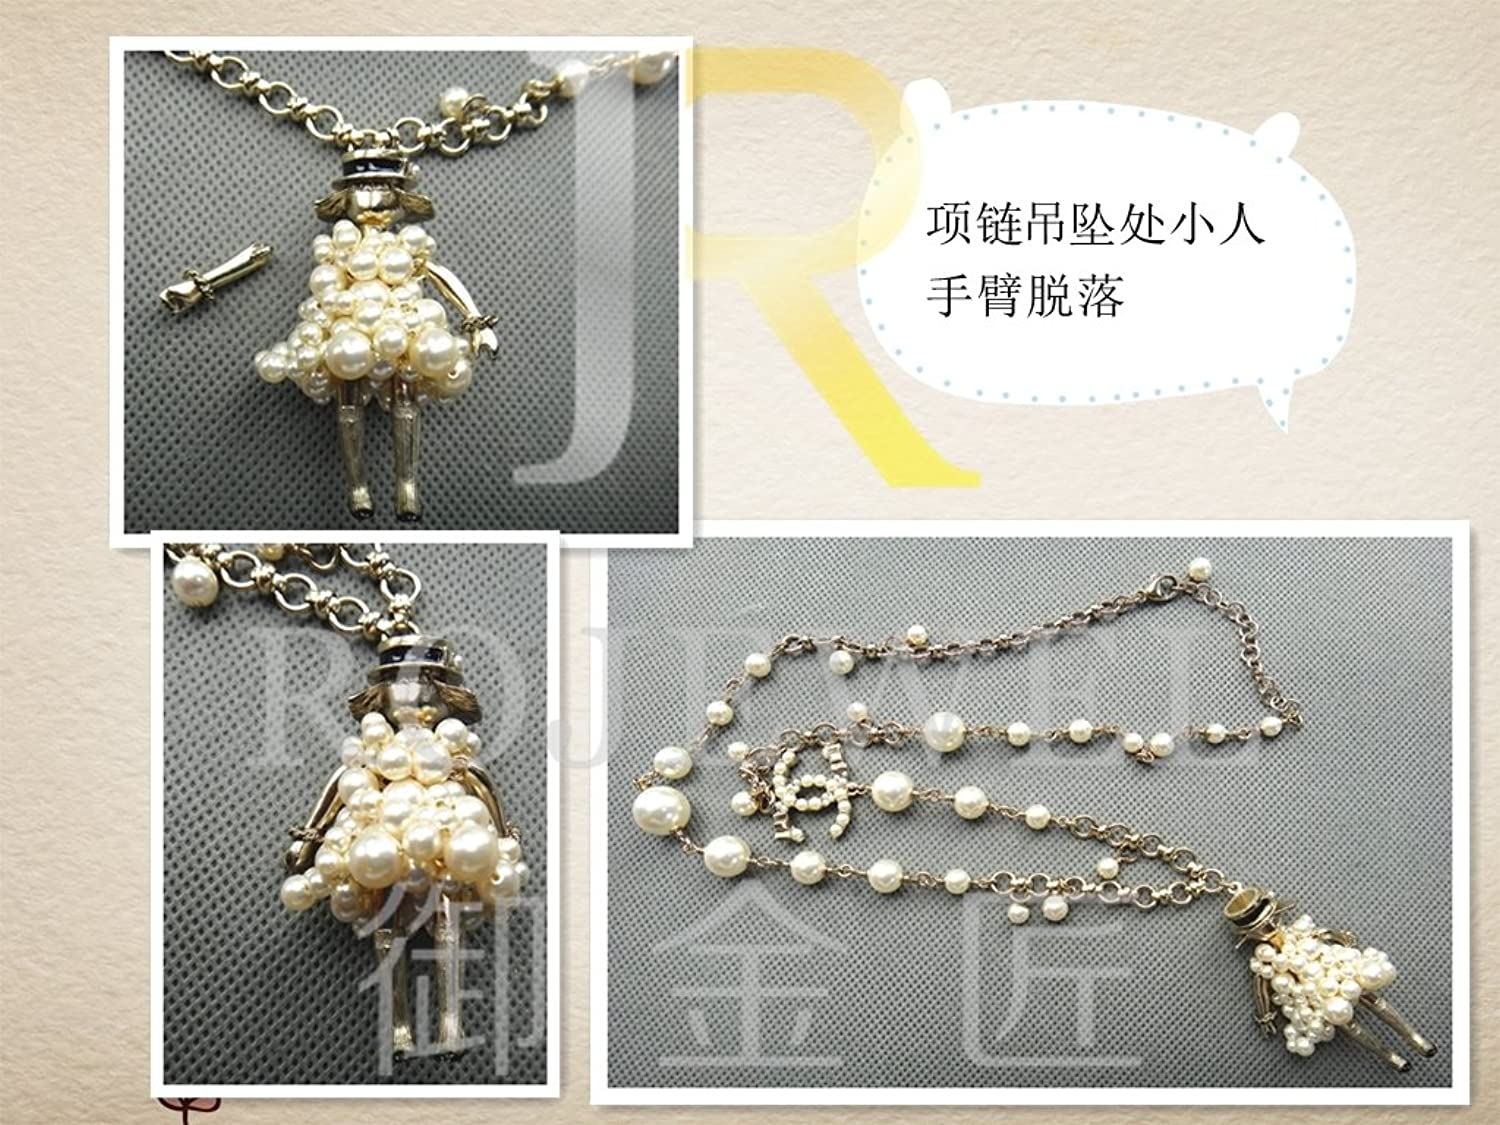 Continuing from Luxury Necklace Pendant Fracture Repair Damage Change Length snap Fastener gem Pearl Inlaid Reinforcement